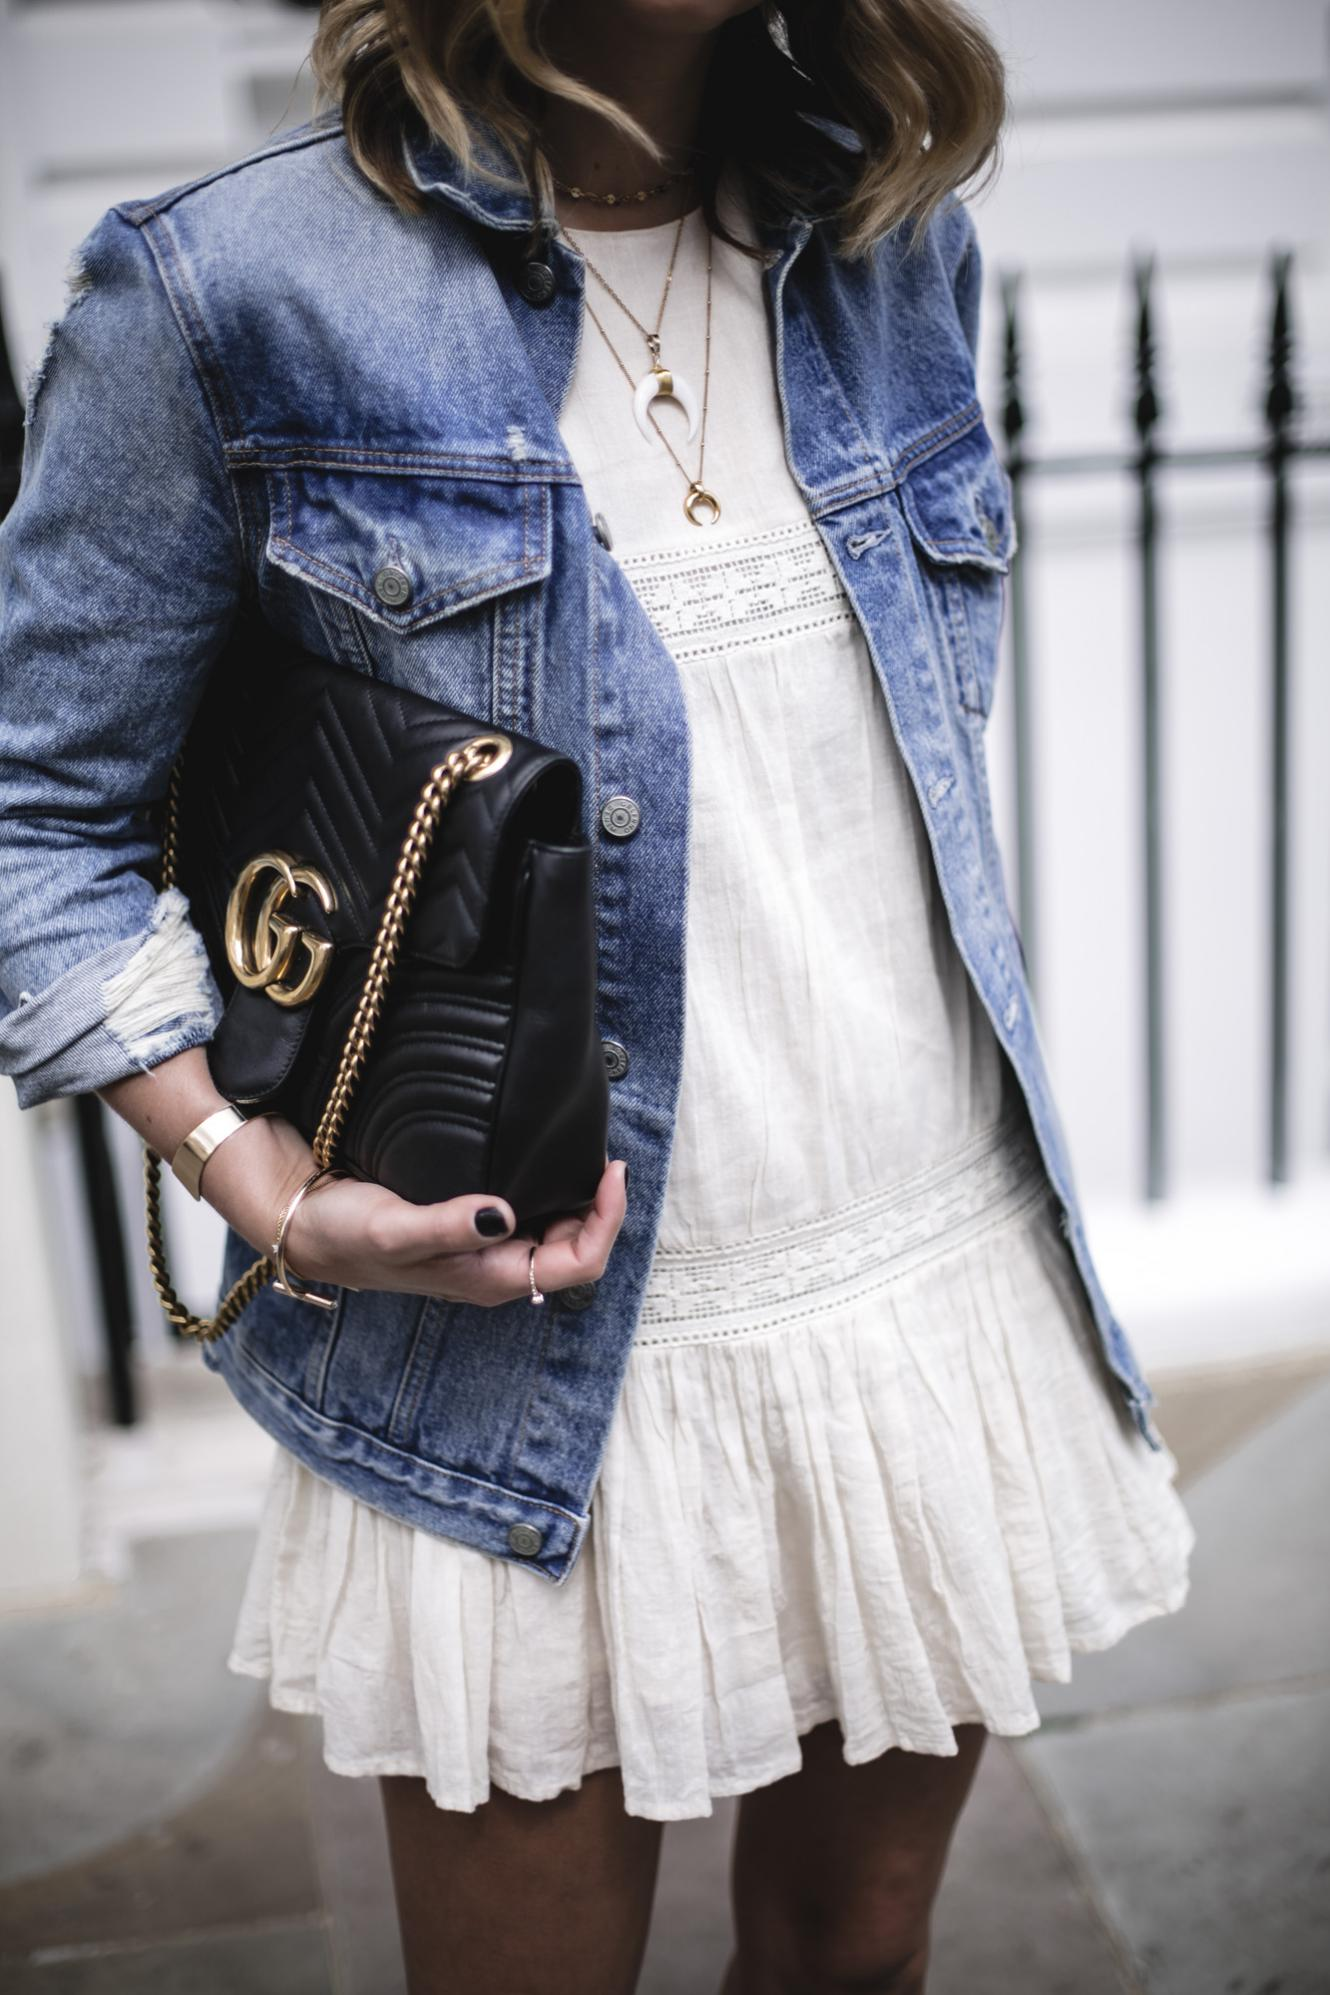 Emma Hill wears oversized denim jacket, boho mini dress, Gucci Marmont bag, layered gold horn necklaces, summer outfit